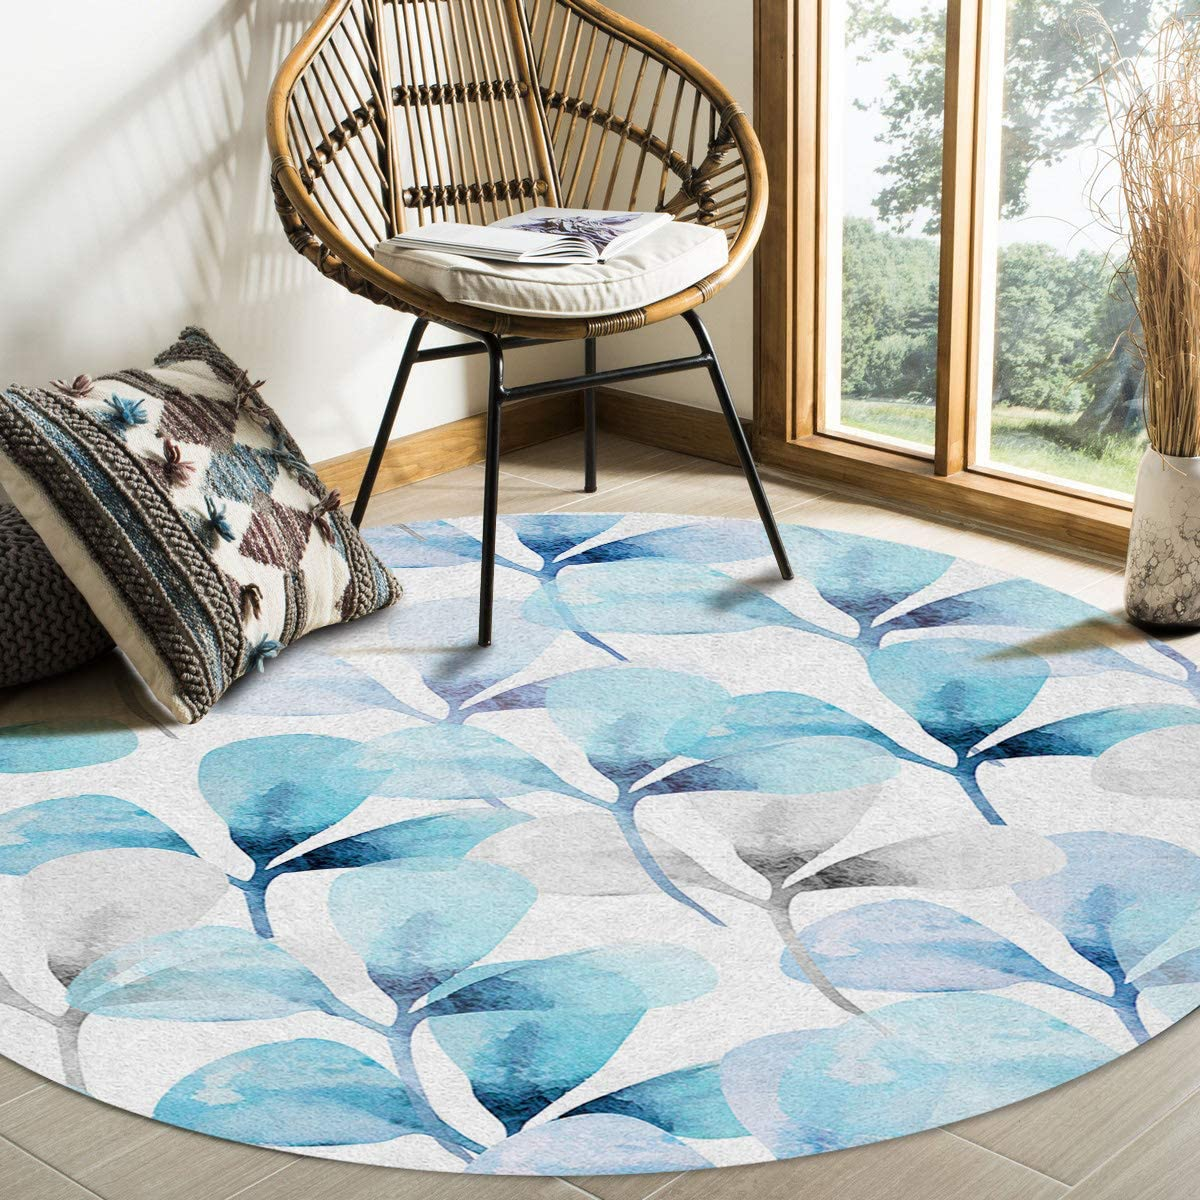 Modern Round Area Rug 6 Bedroom Non-Shedding Feet for Recommendation Super beauty product restock quality top Low-Profi